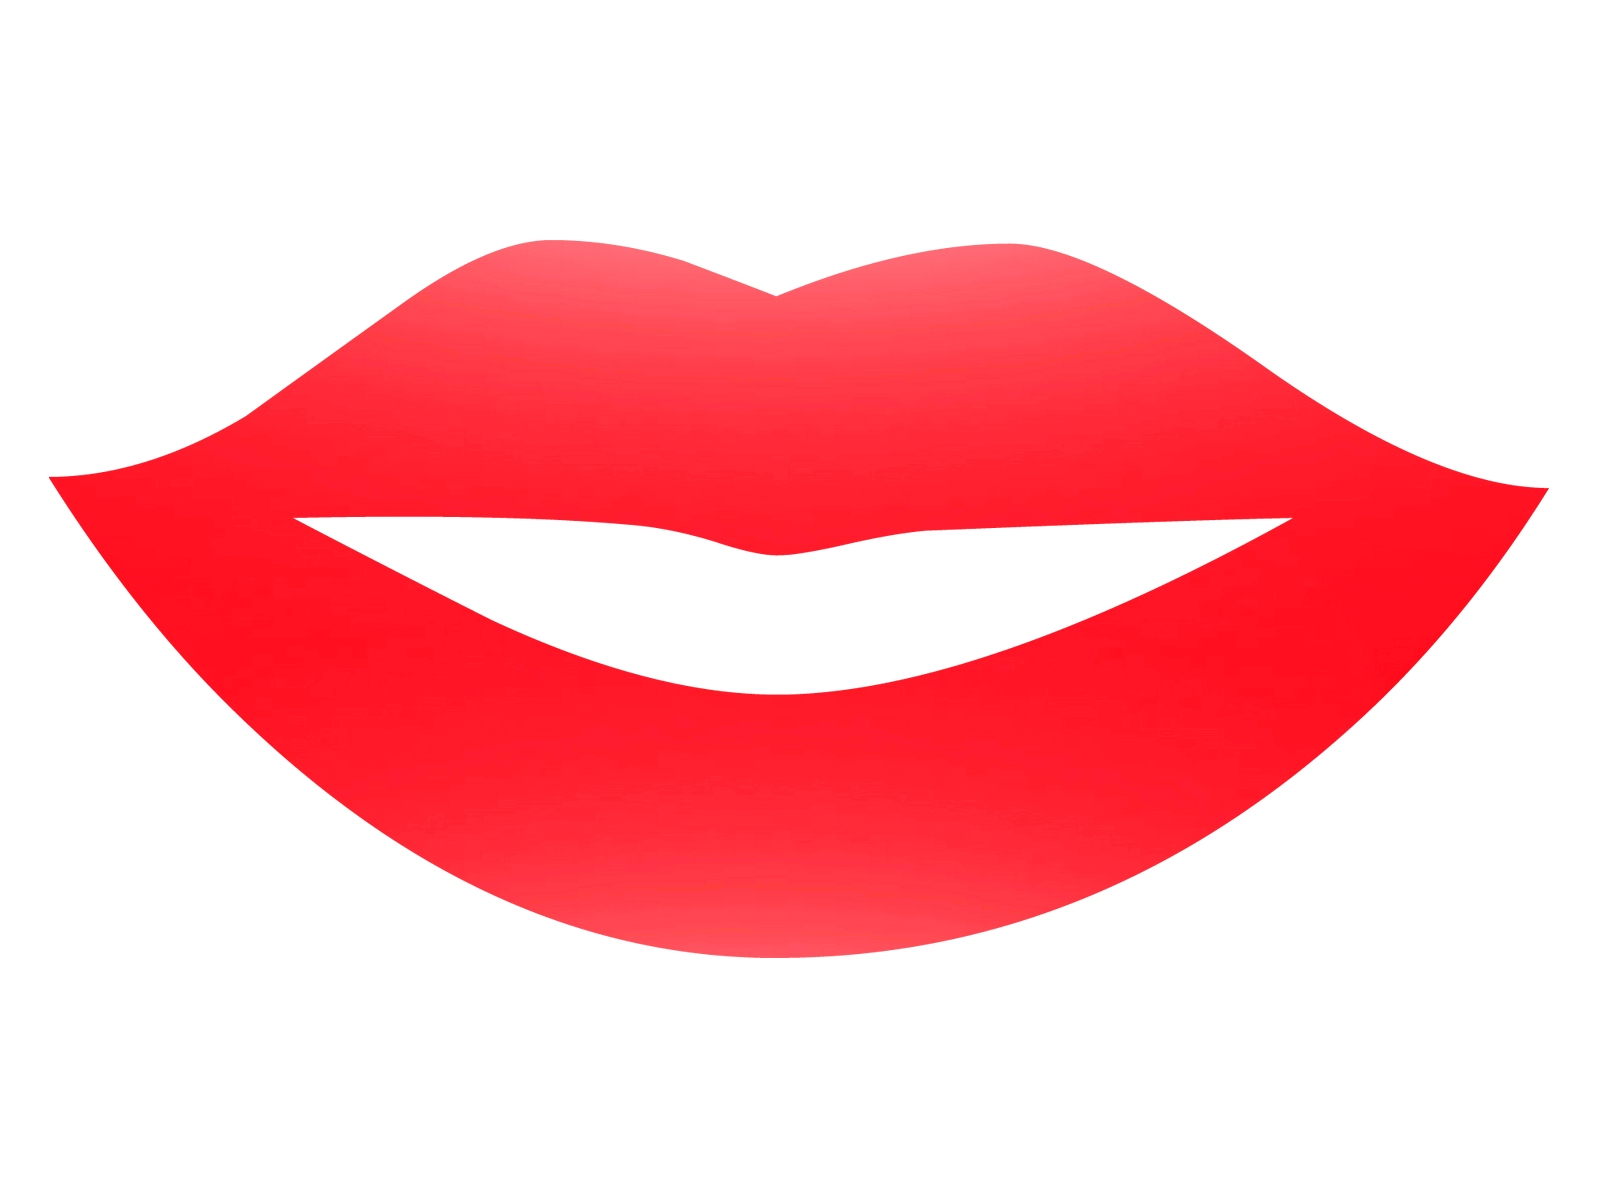 Lips clipart color. Gallery free clip art